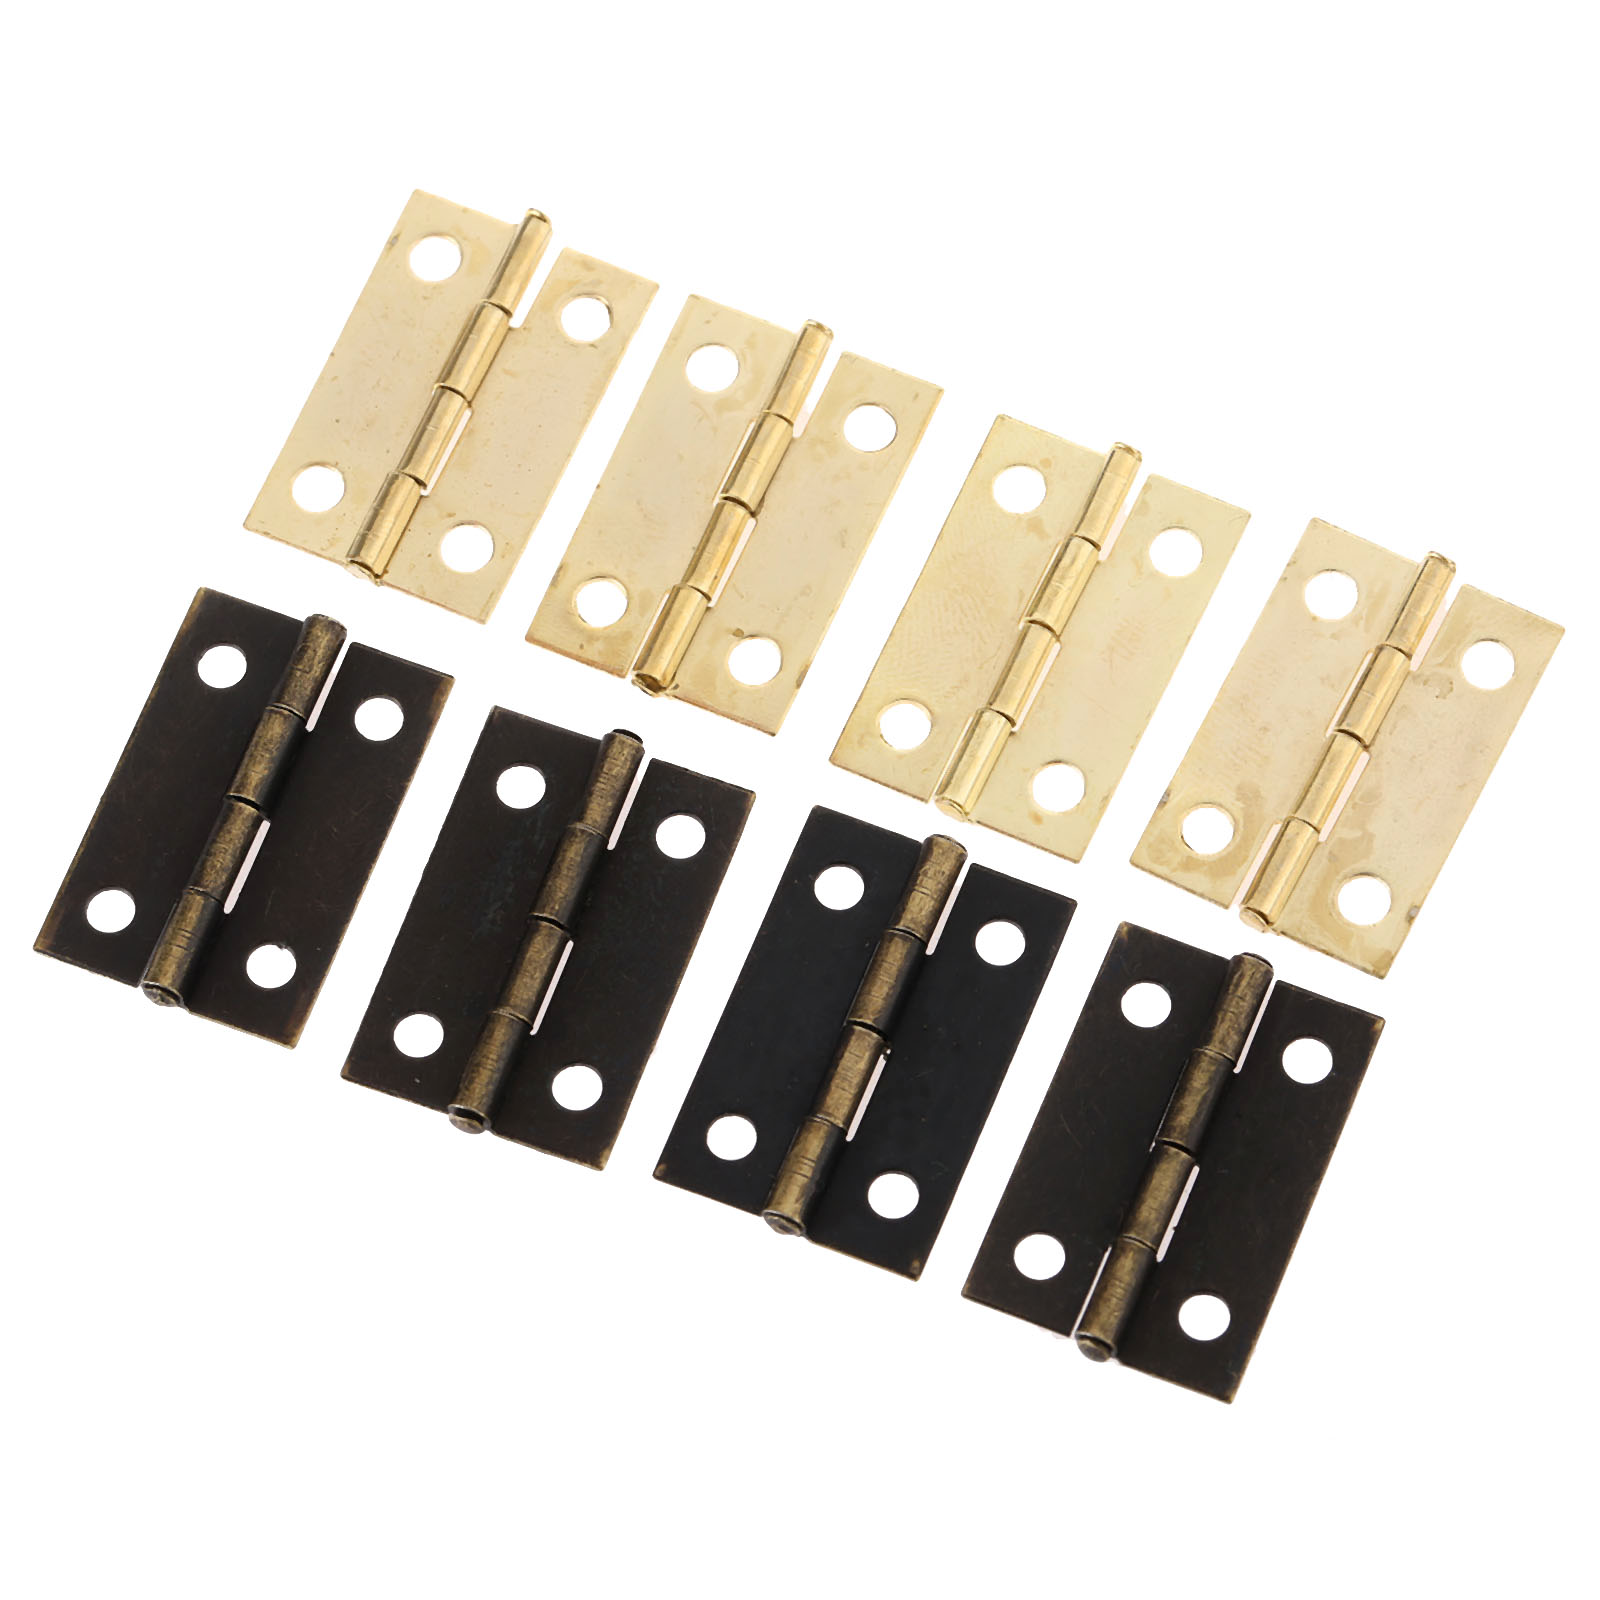 50Pcs 24*16mm Furniture Cabinet Drawer Door Butt Hinge Wood Jewelry Box Decorative Hinges for Furniture Hardware Bronze Gold